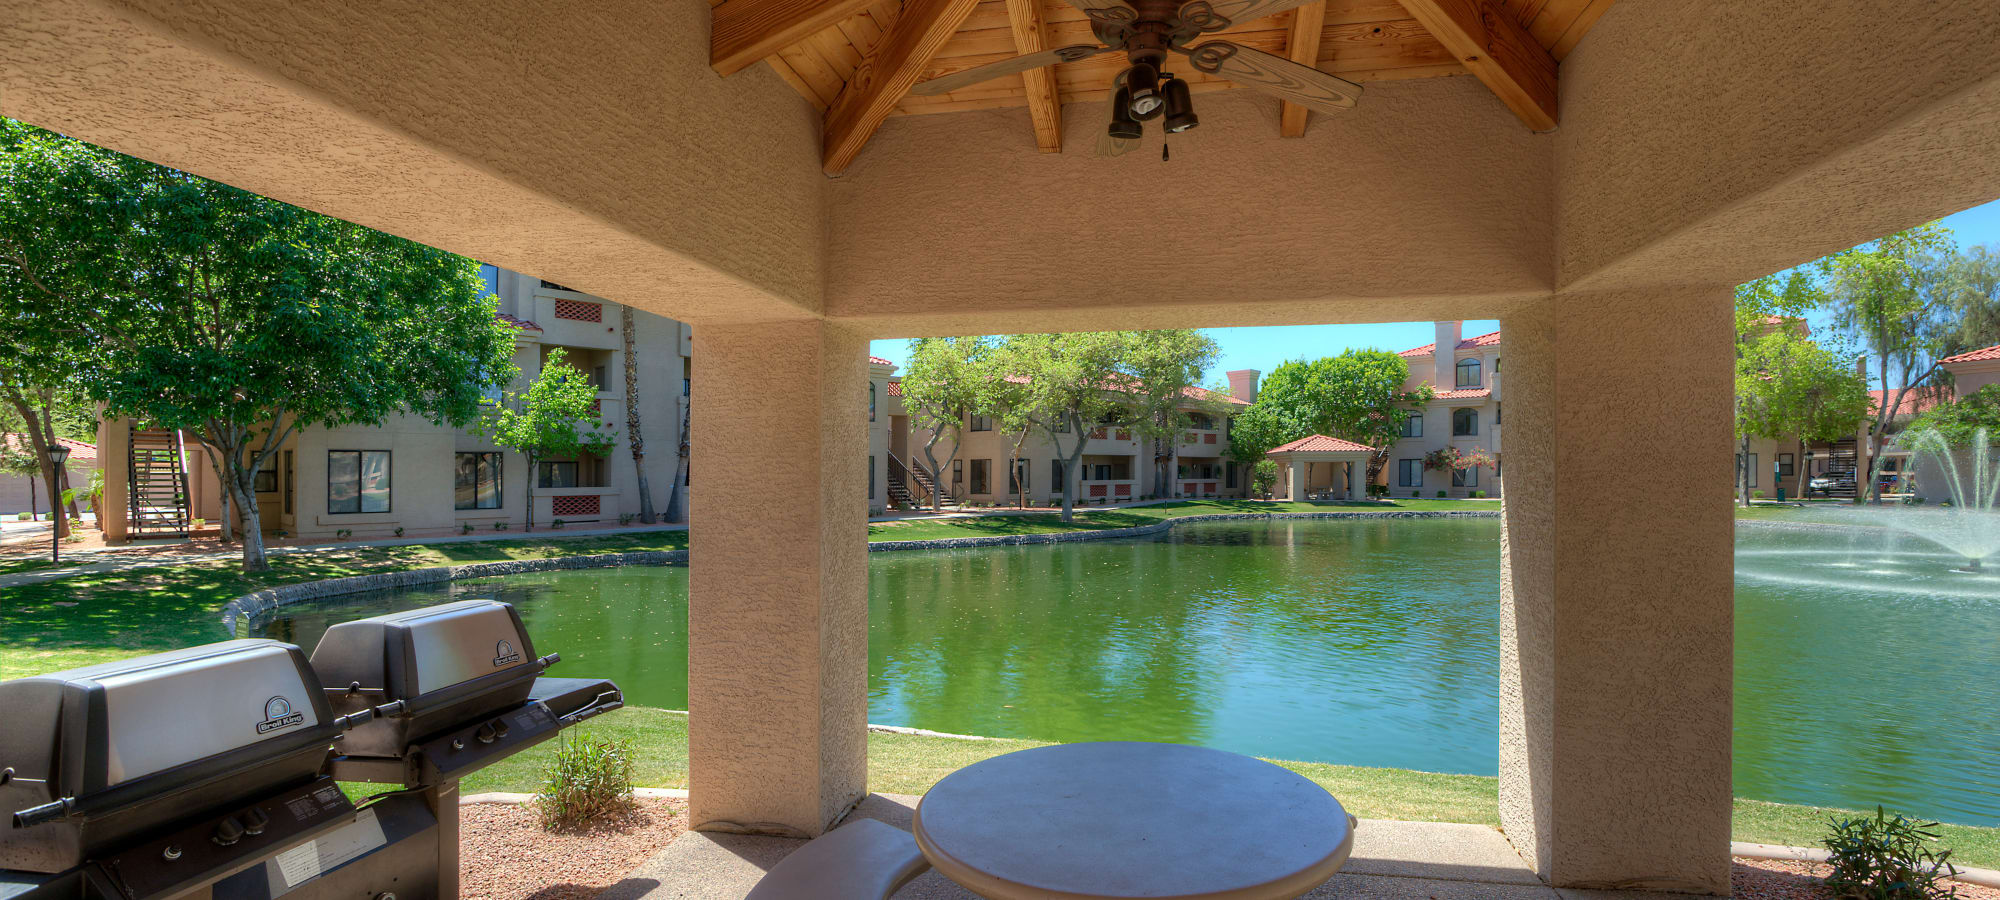 Covered picnic area next to a pond at San Lagos in Glendale, Arizona